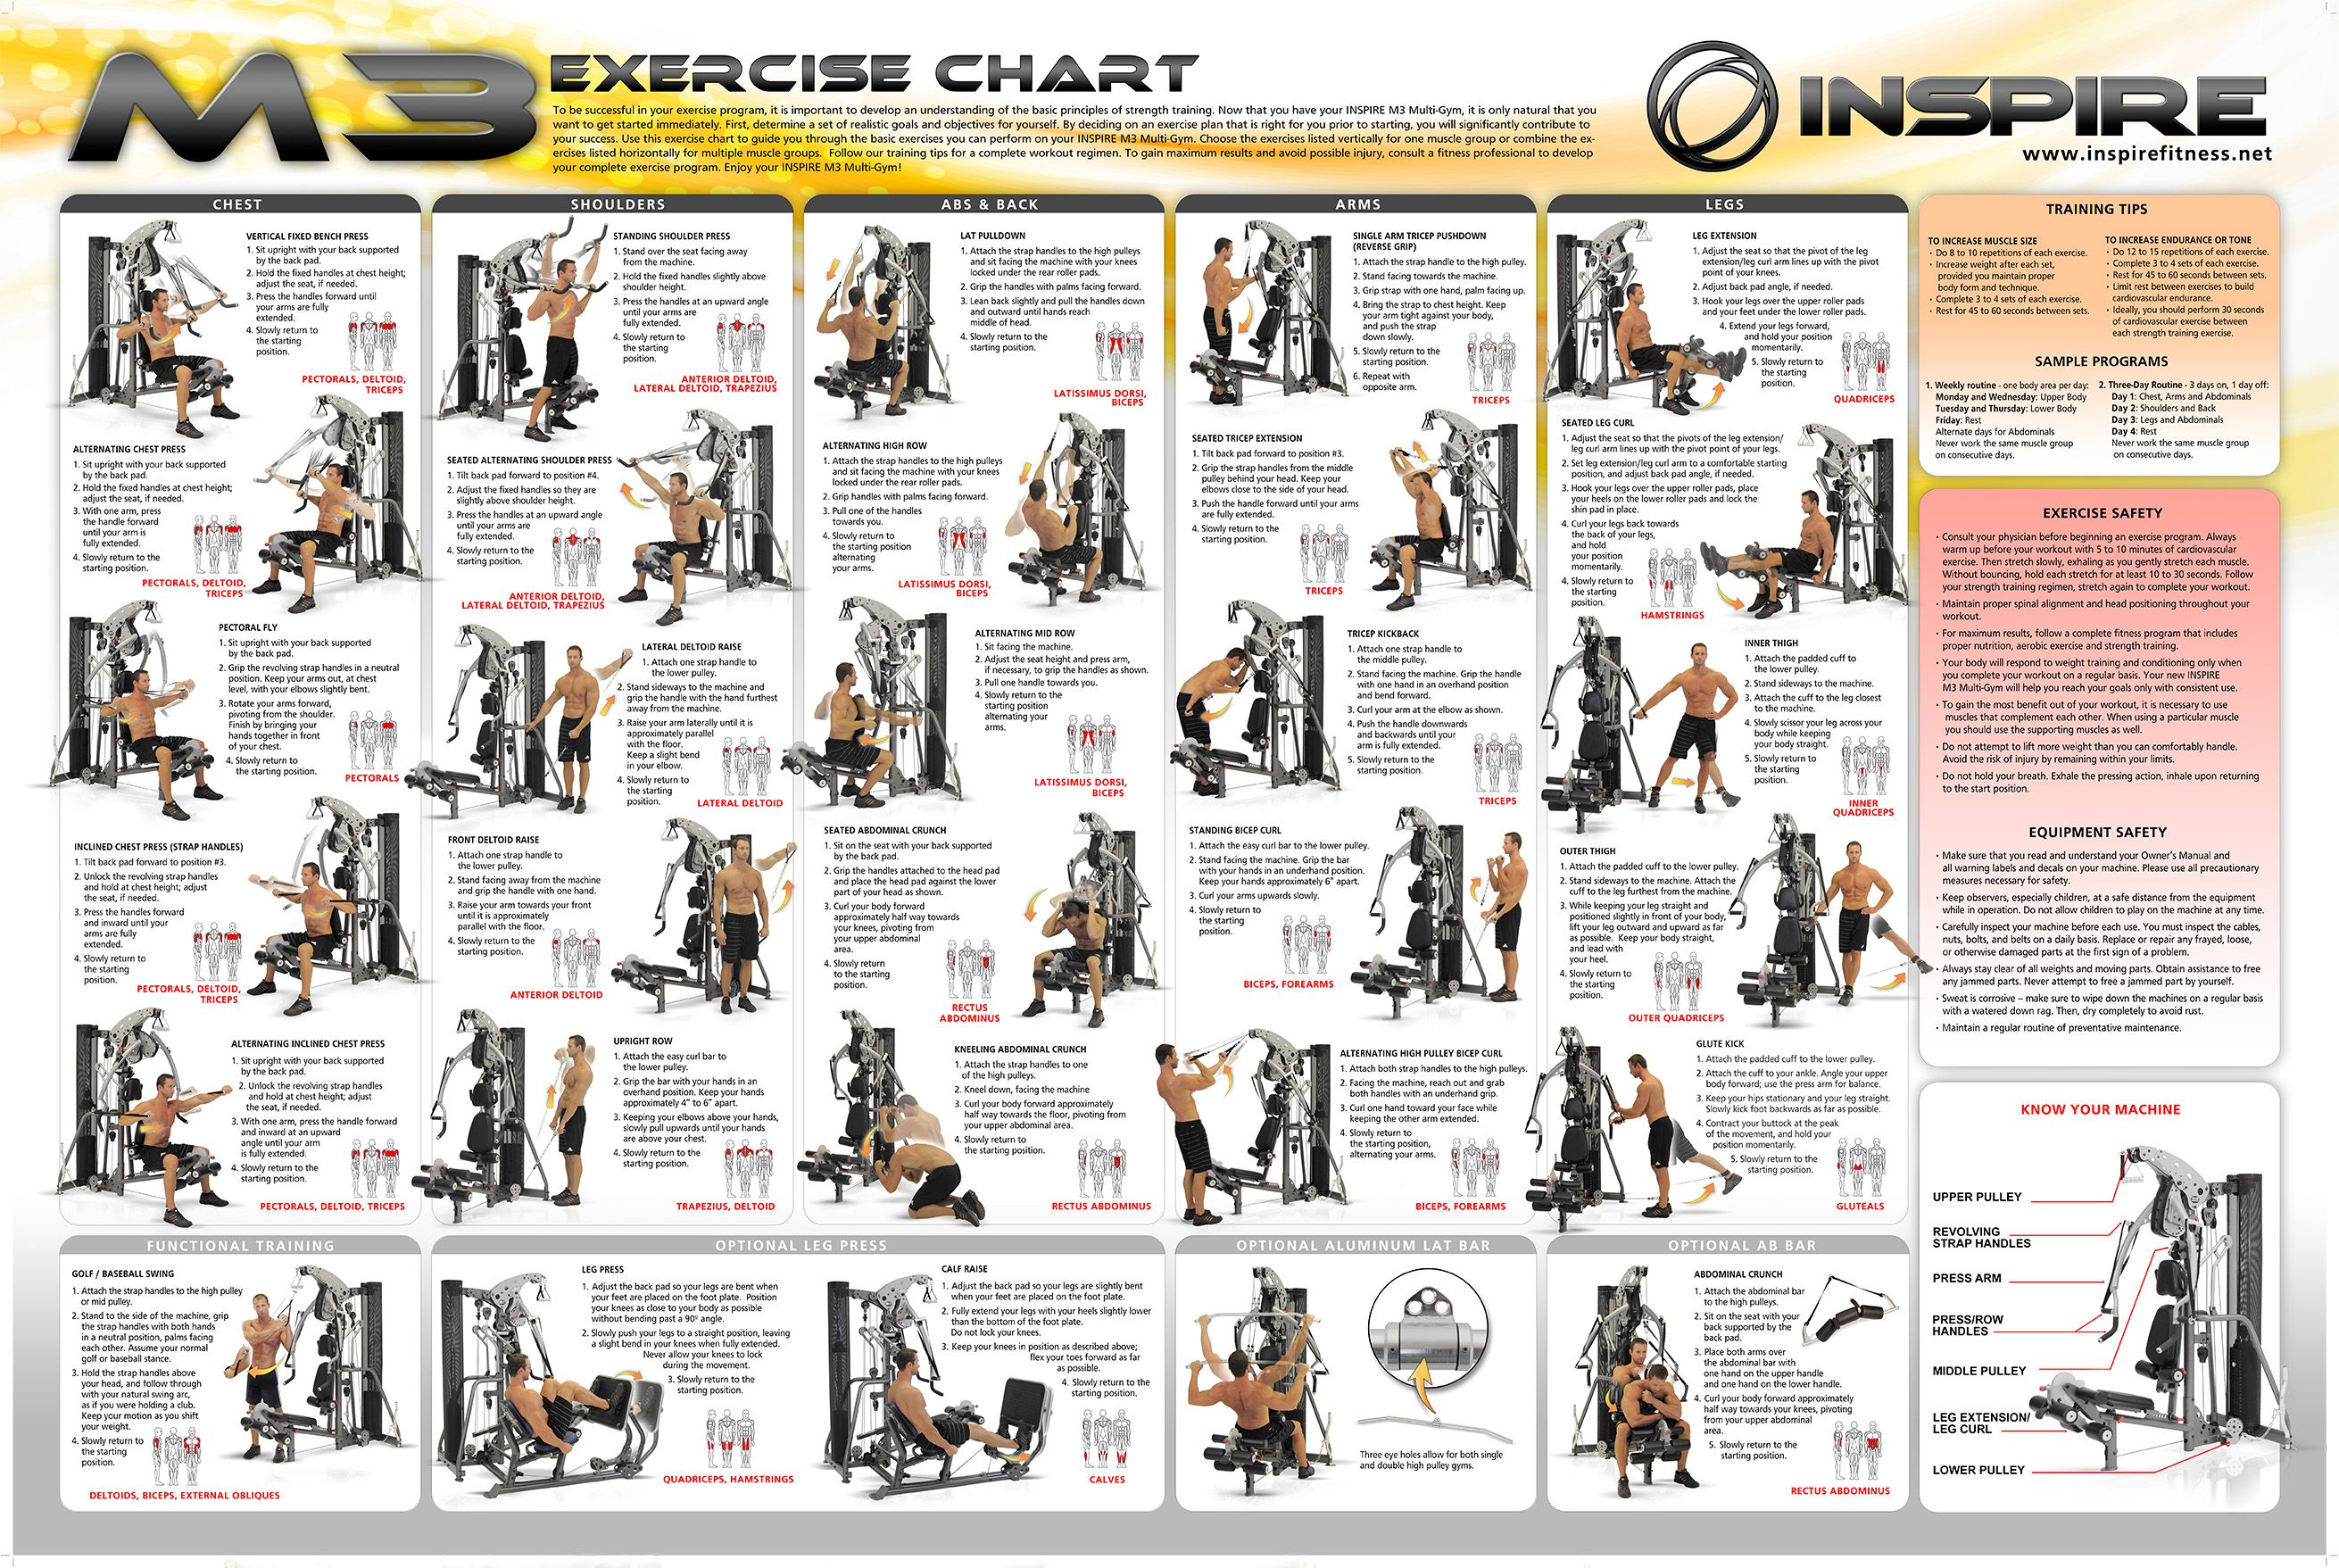 Weider Home Gym Exercise Chart | Weight machine workouts